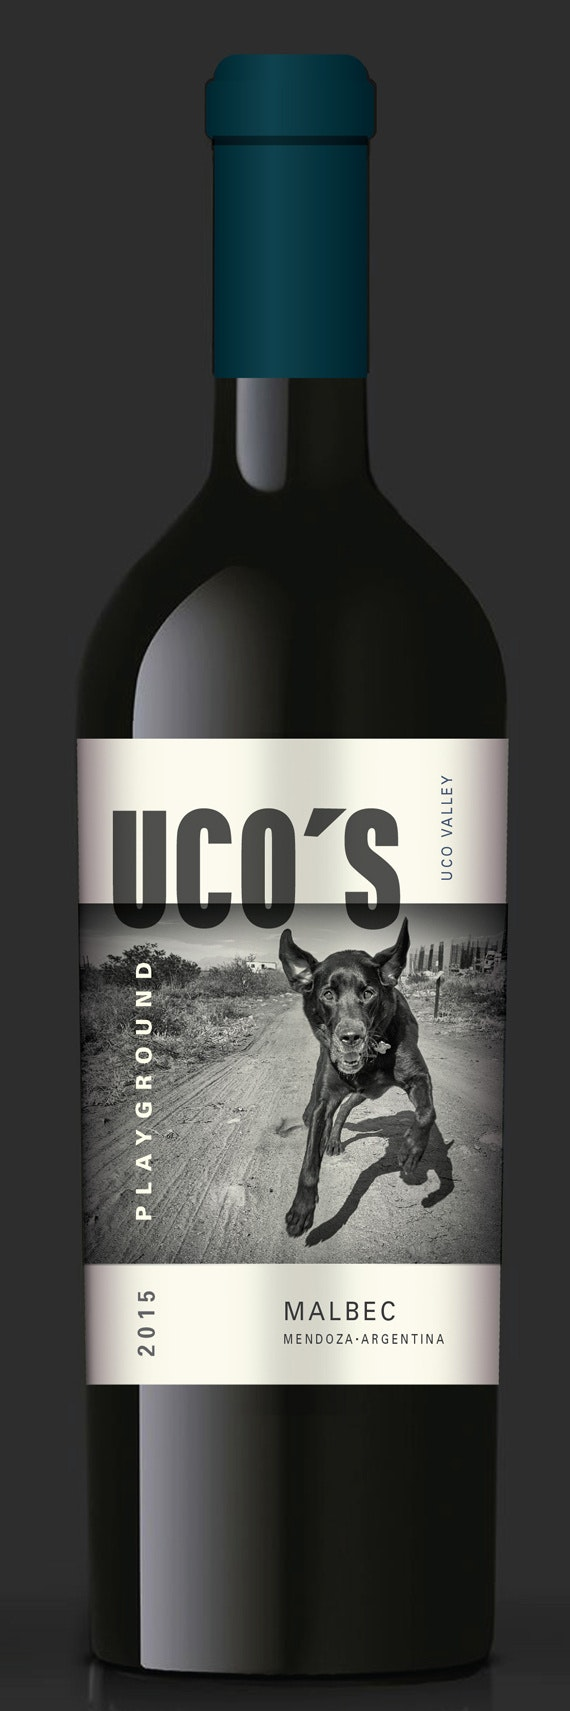 Modern wine label featuring dog